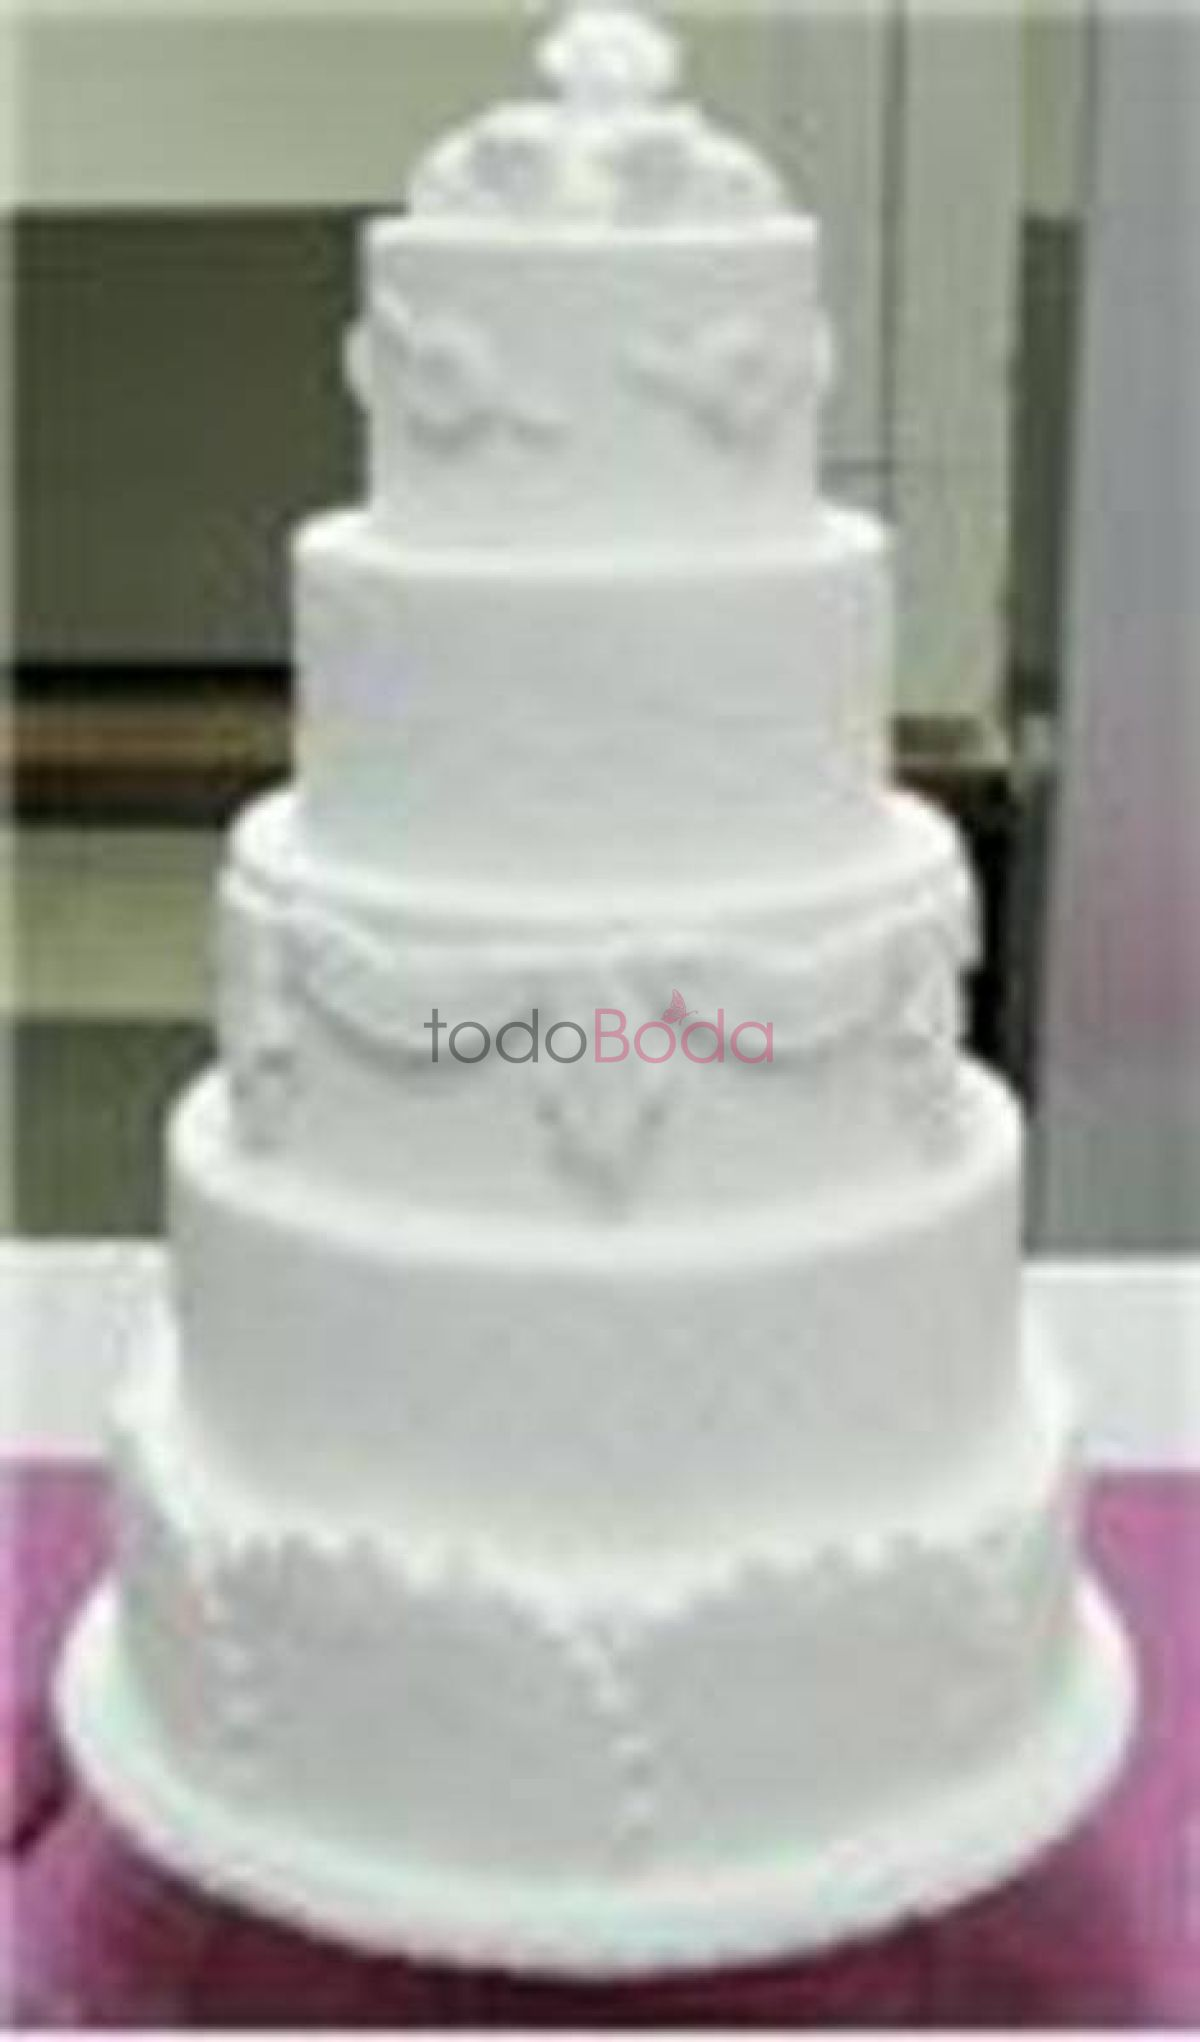 Tu boda en Cream Bakery 1